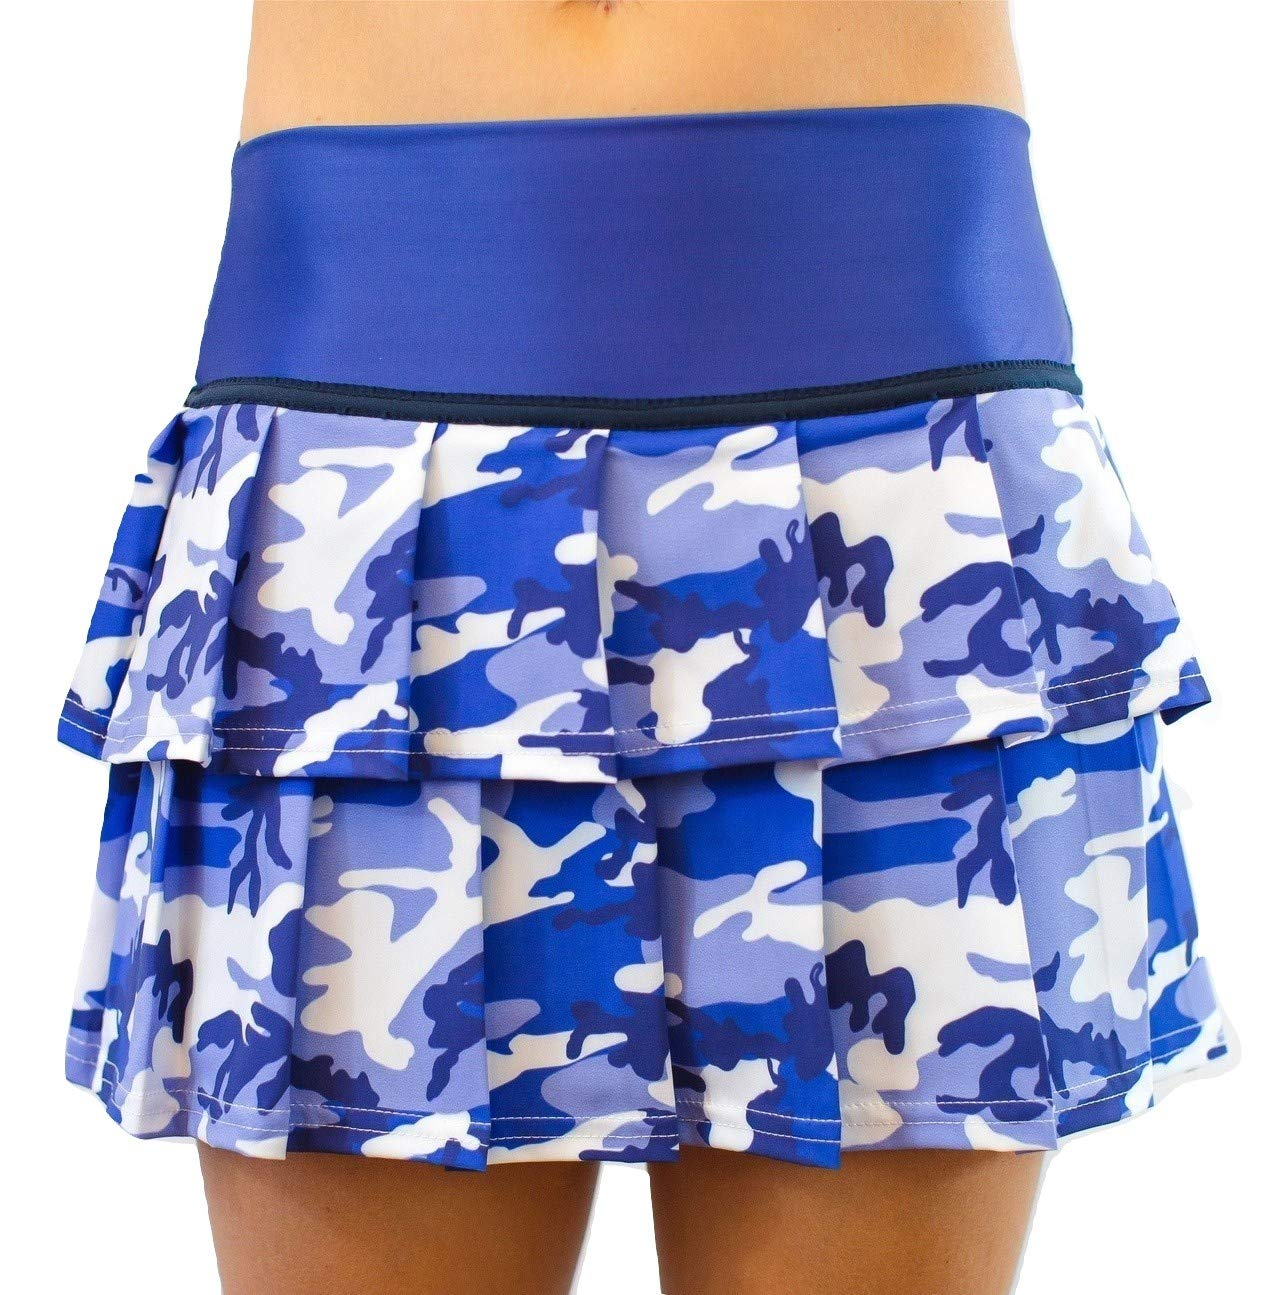 Faye+Florie Lisa 2 Tier Tennis Skirt (Blue Camo, X-Small)